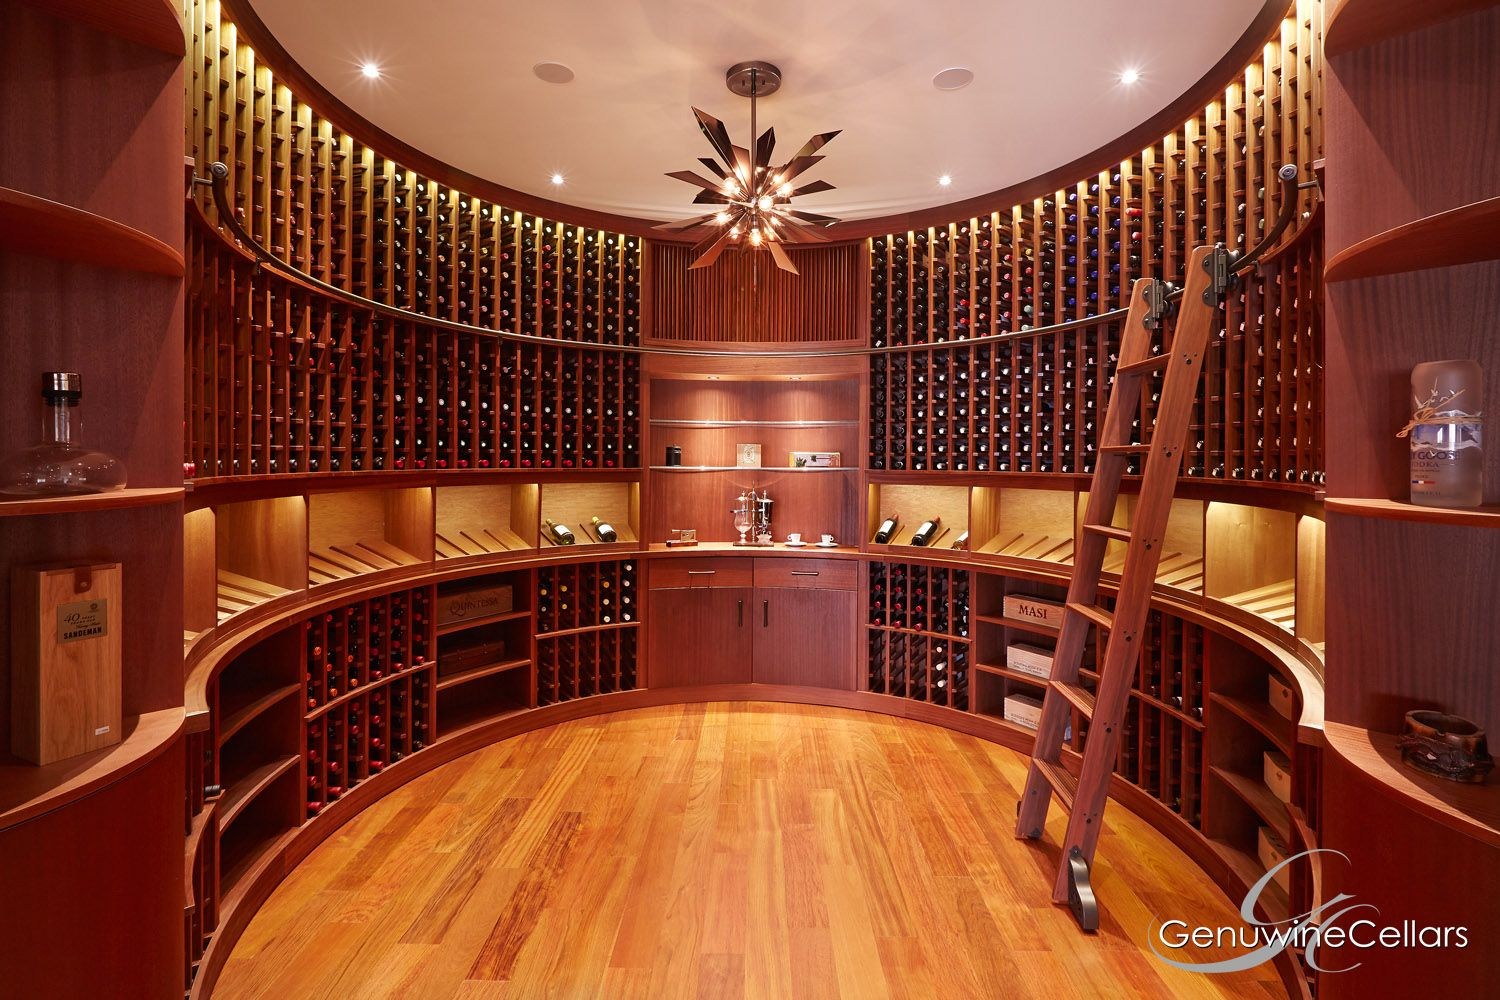 Custom Rolling Ladder Semi Circle 8ft High Wine Cellar Style The Curve By Genuwine Cellars Wine Cellar Wine Room Design Custom Wine Cellars